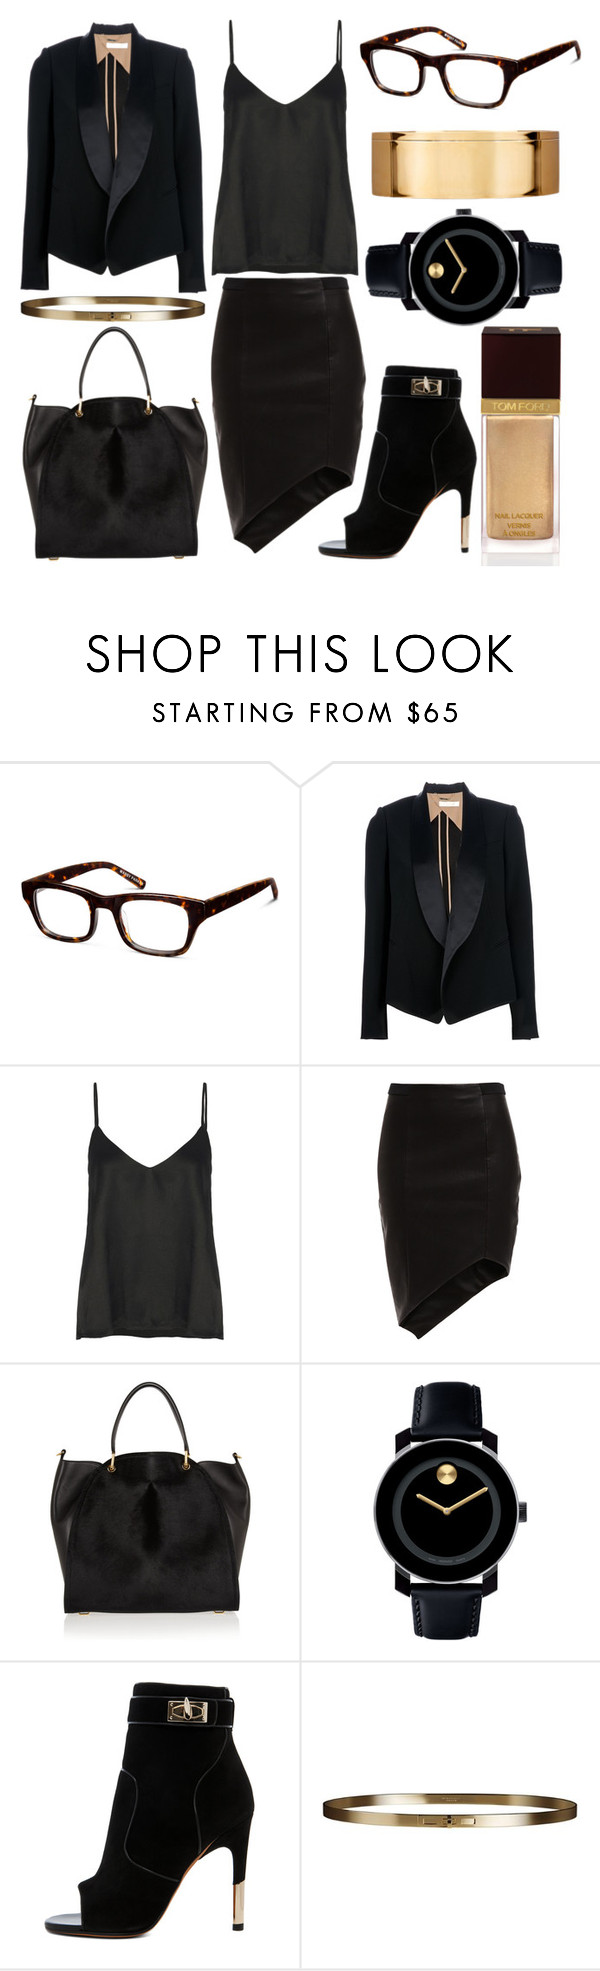 """My Summer Internship"" by ginshelyn ❤ liked on Polyvore featuring Warby Parker, Chloé, Acne Studios, Bardot, Maiyet, Givenchy, Movado, Burberry, Tom Ford and summerinternship"